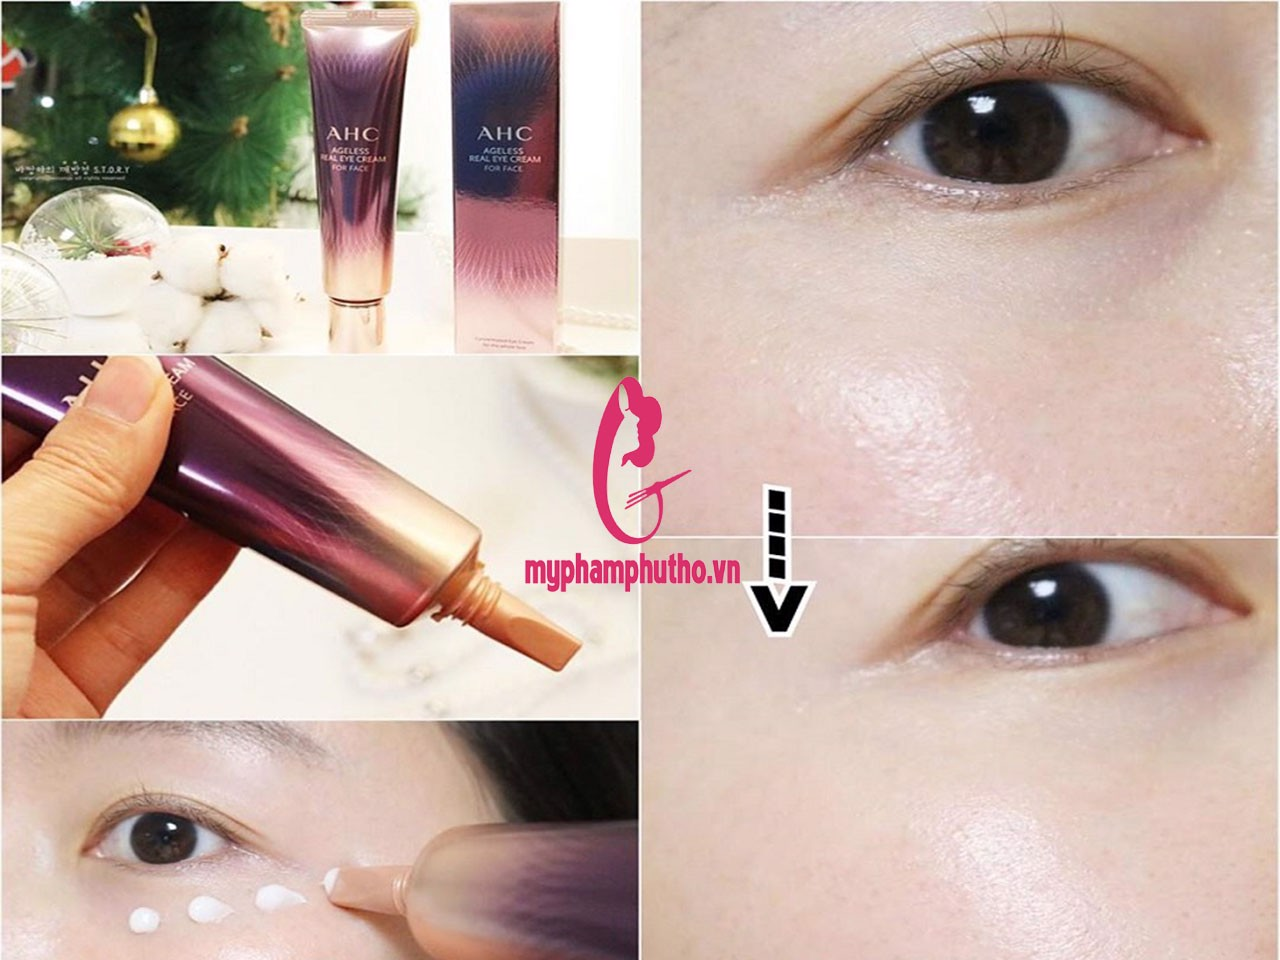 Review Kem Mắt AHC AGELESS REAL EYE CREAM FOR FACE Hàn Quốc